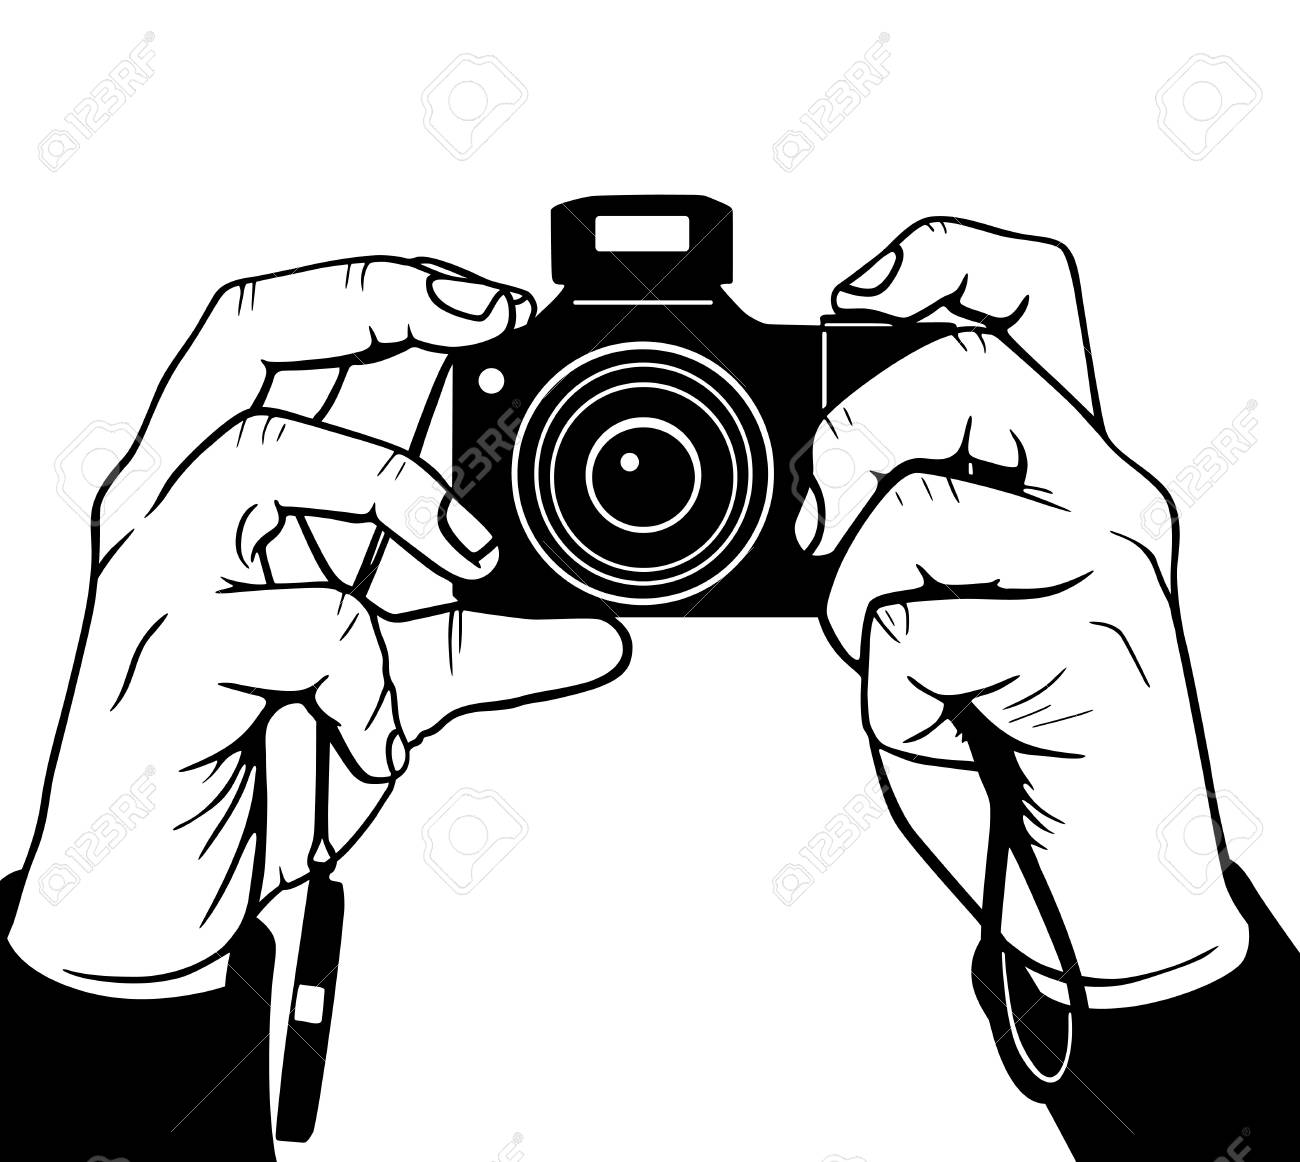 hands photography vector illustration royalty free cliparts rh 123rf com photography vector logo free photography vector icons